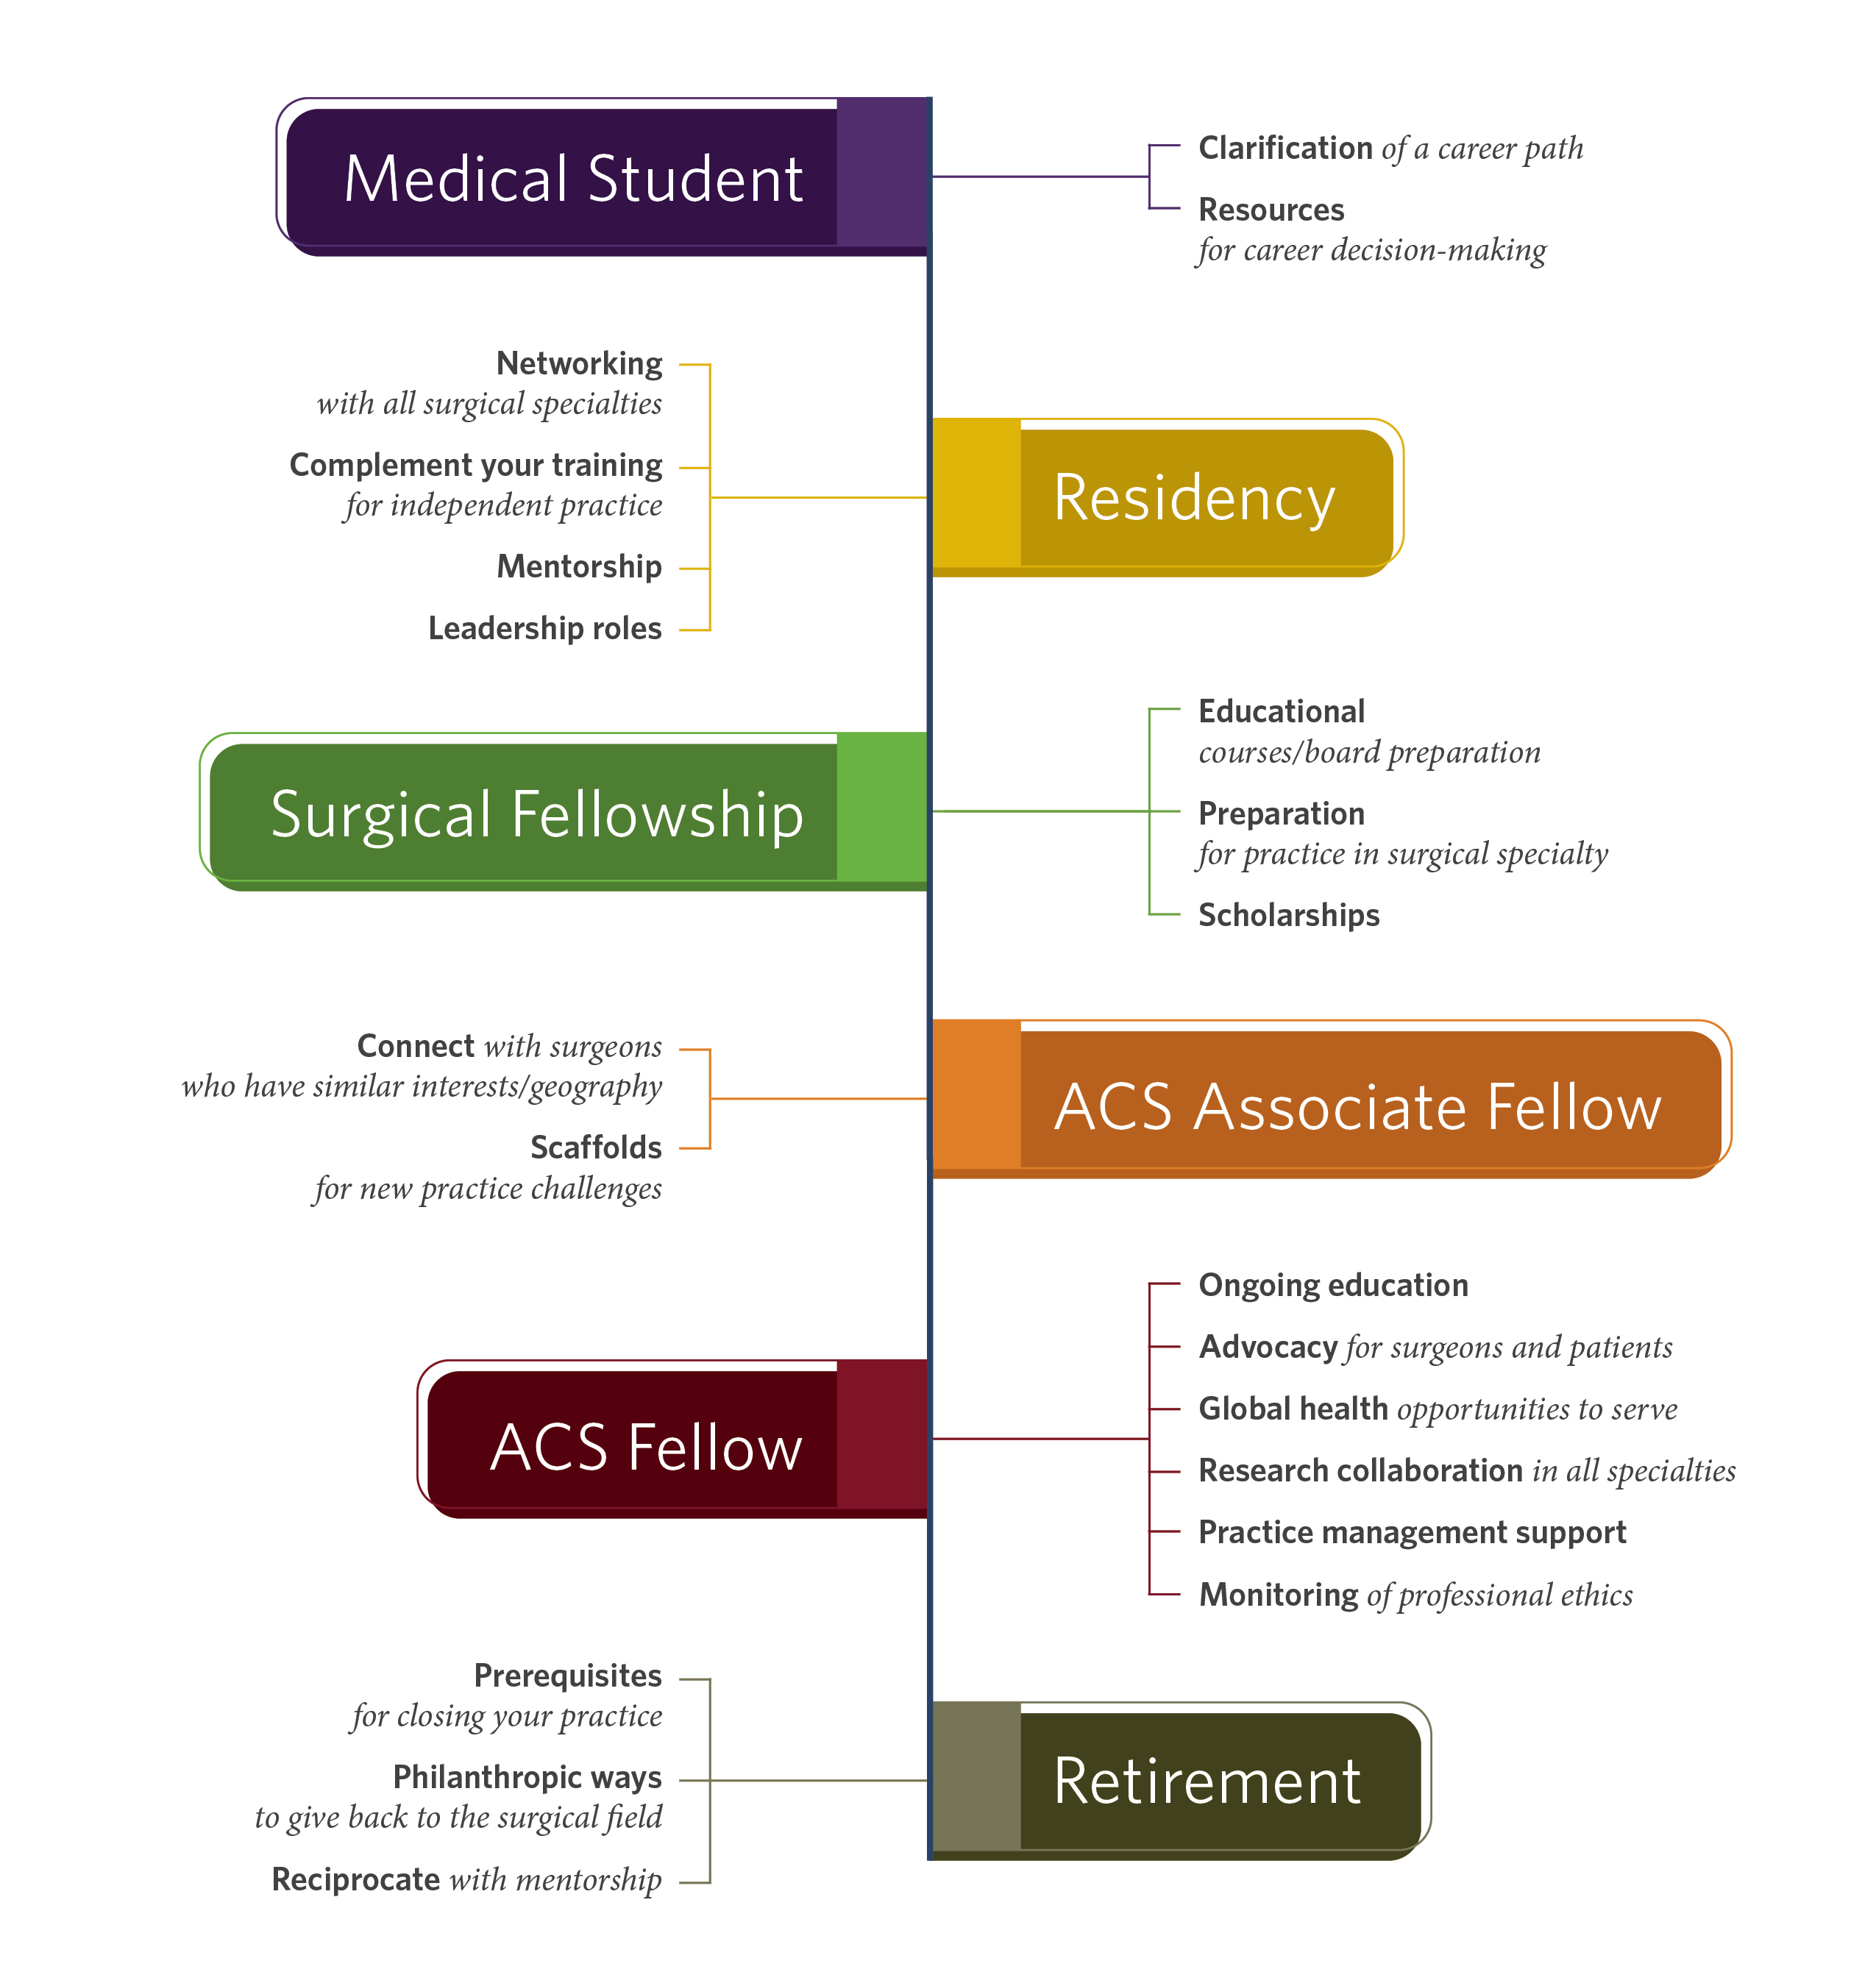 Resources and support for every stage of a surgeon's career